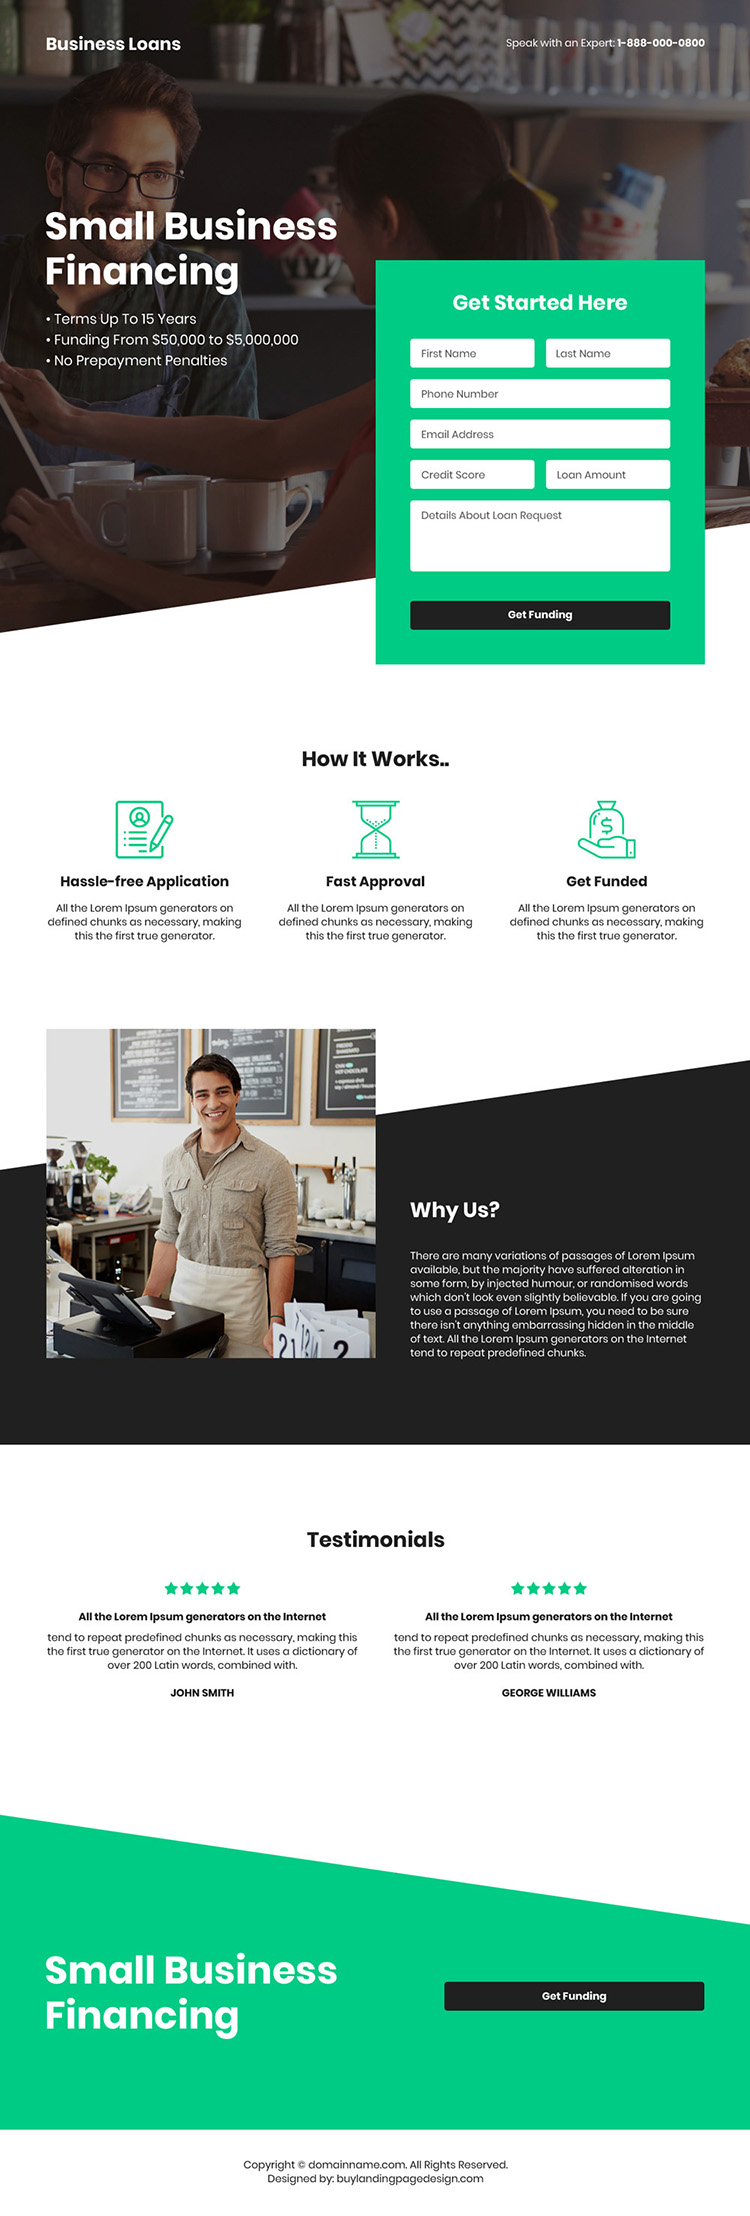 small business funding bootstrap landing page design